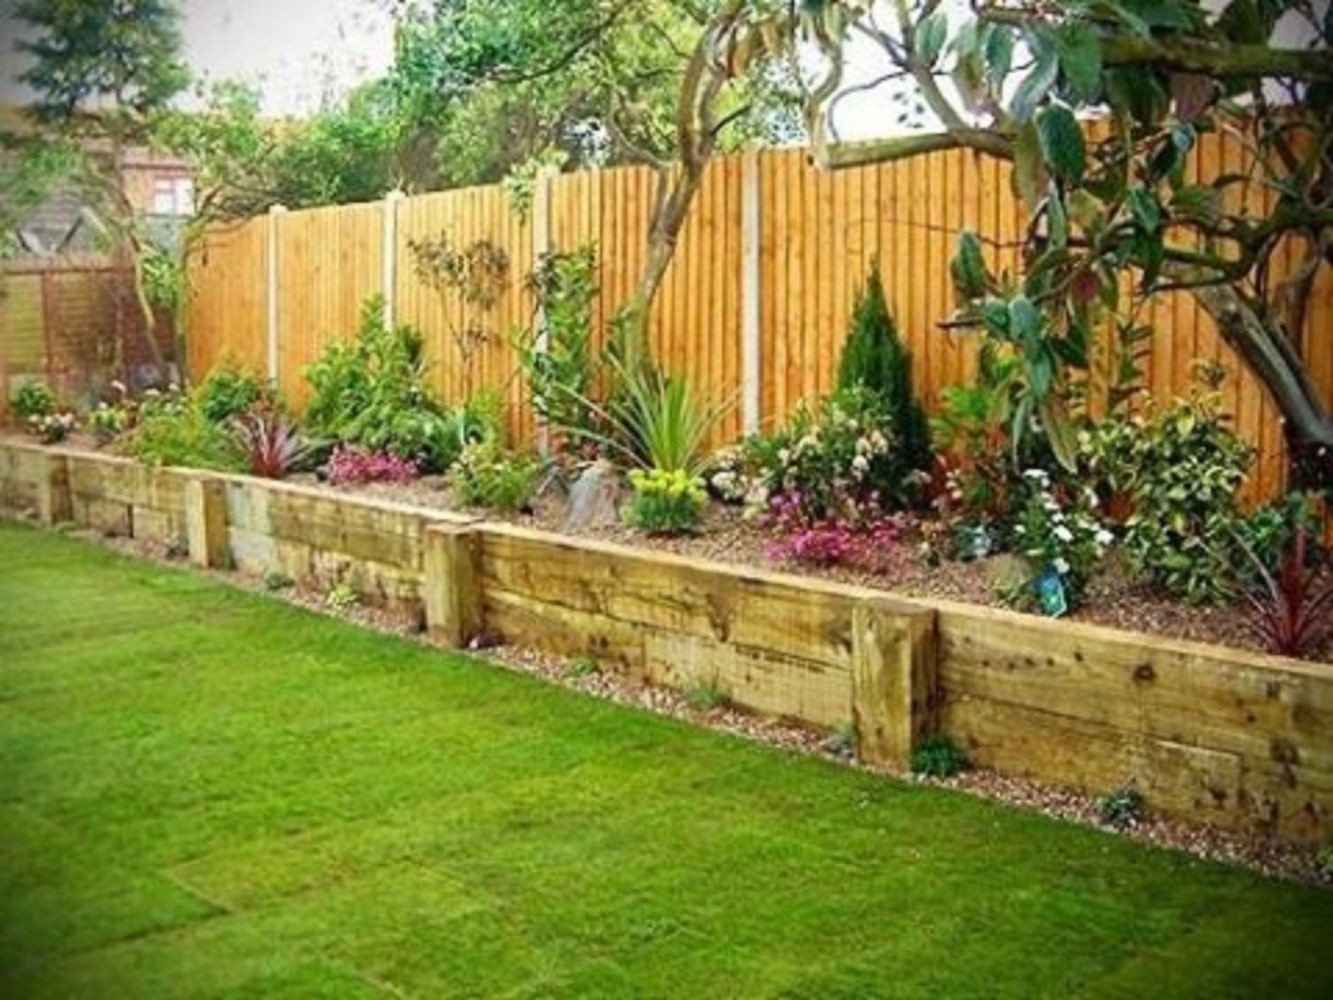 Best ideas about Cheap Fence DIY . Save or Pin Cheap diy privacy fence ideas 21 Wartaku Now.